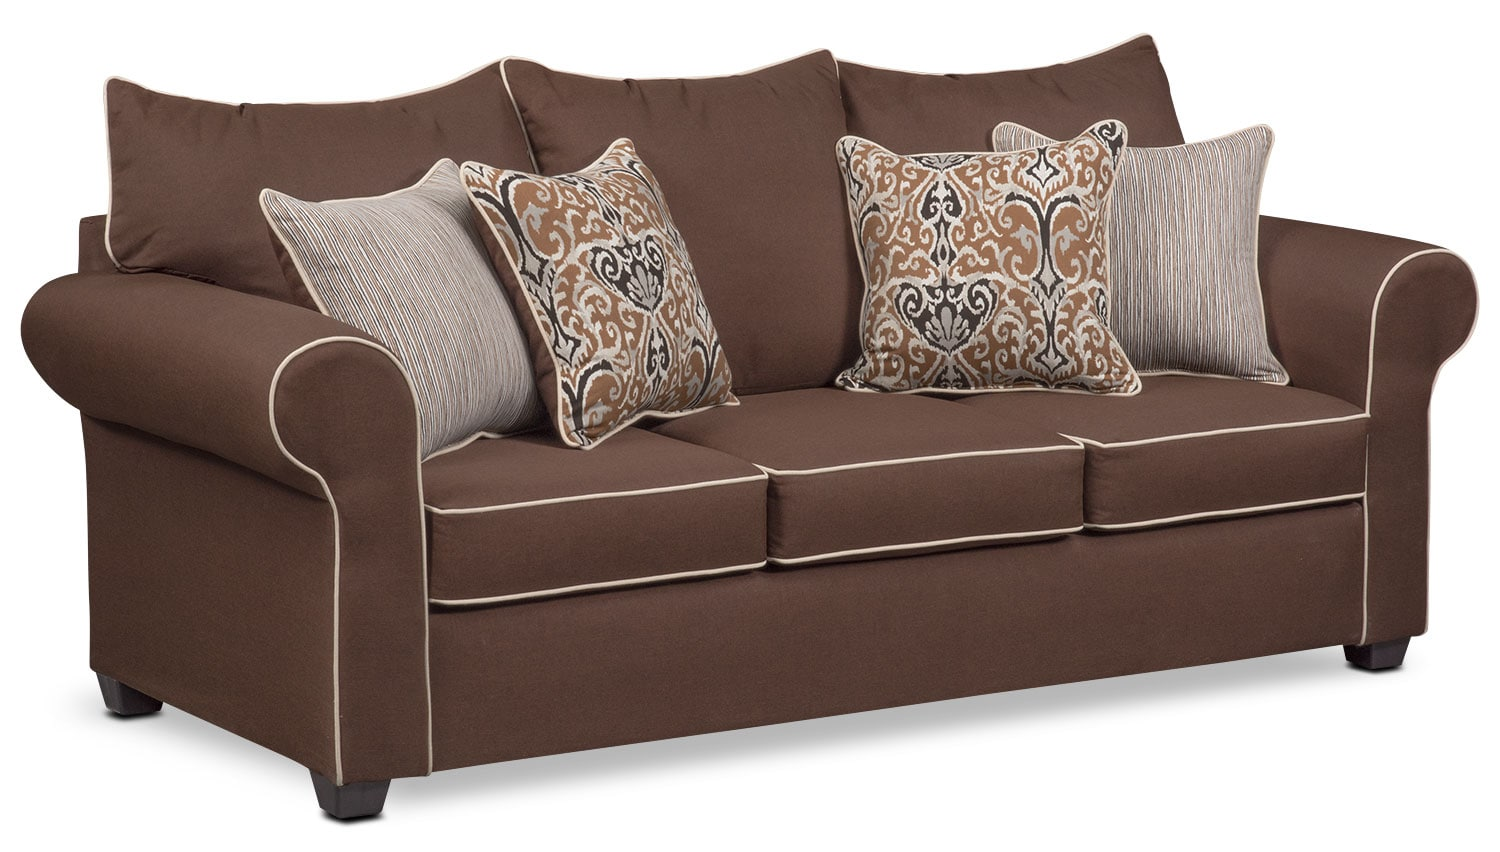 Carla Queen Innerspring Sleeper Sofa - Chocolate  sc 1 st  Value City Furniture : sectional sleeper sofa queen - Sectionals, Sofas & Couches